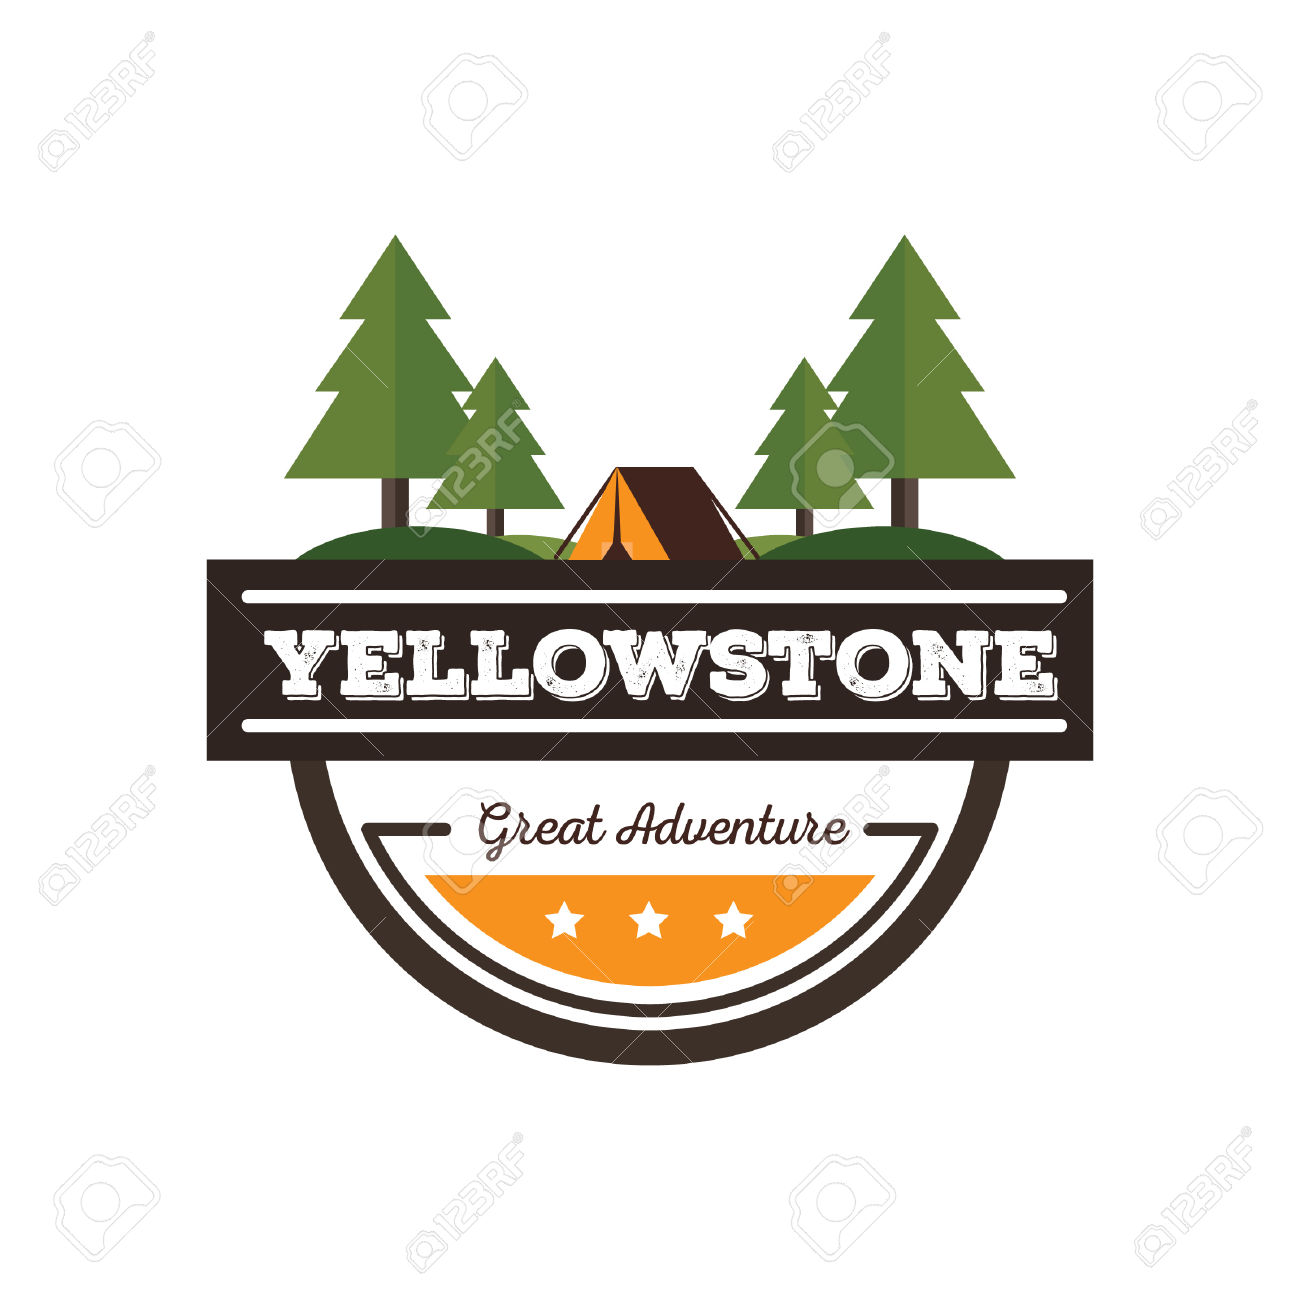 Yellowstone clipart.